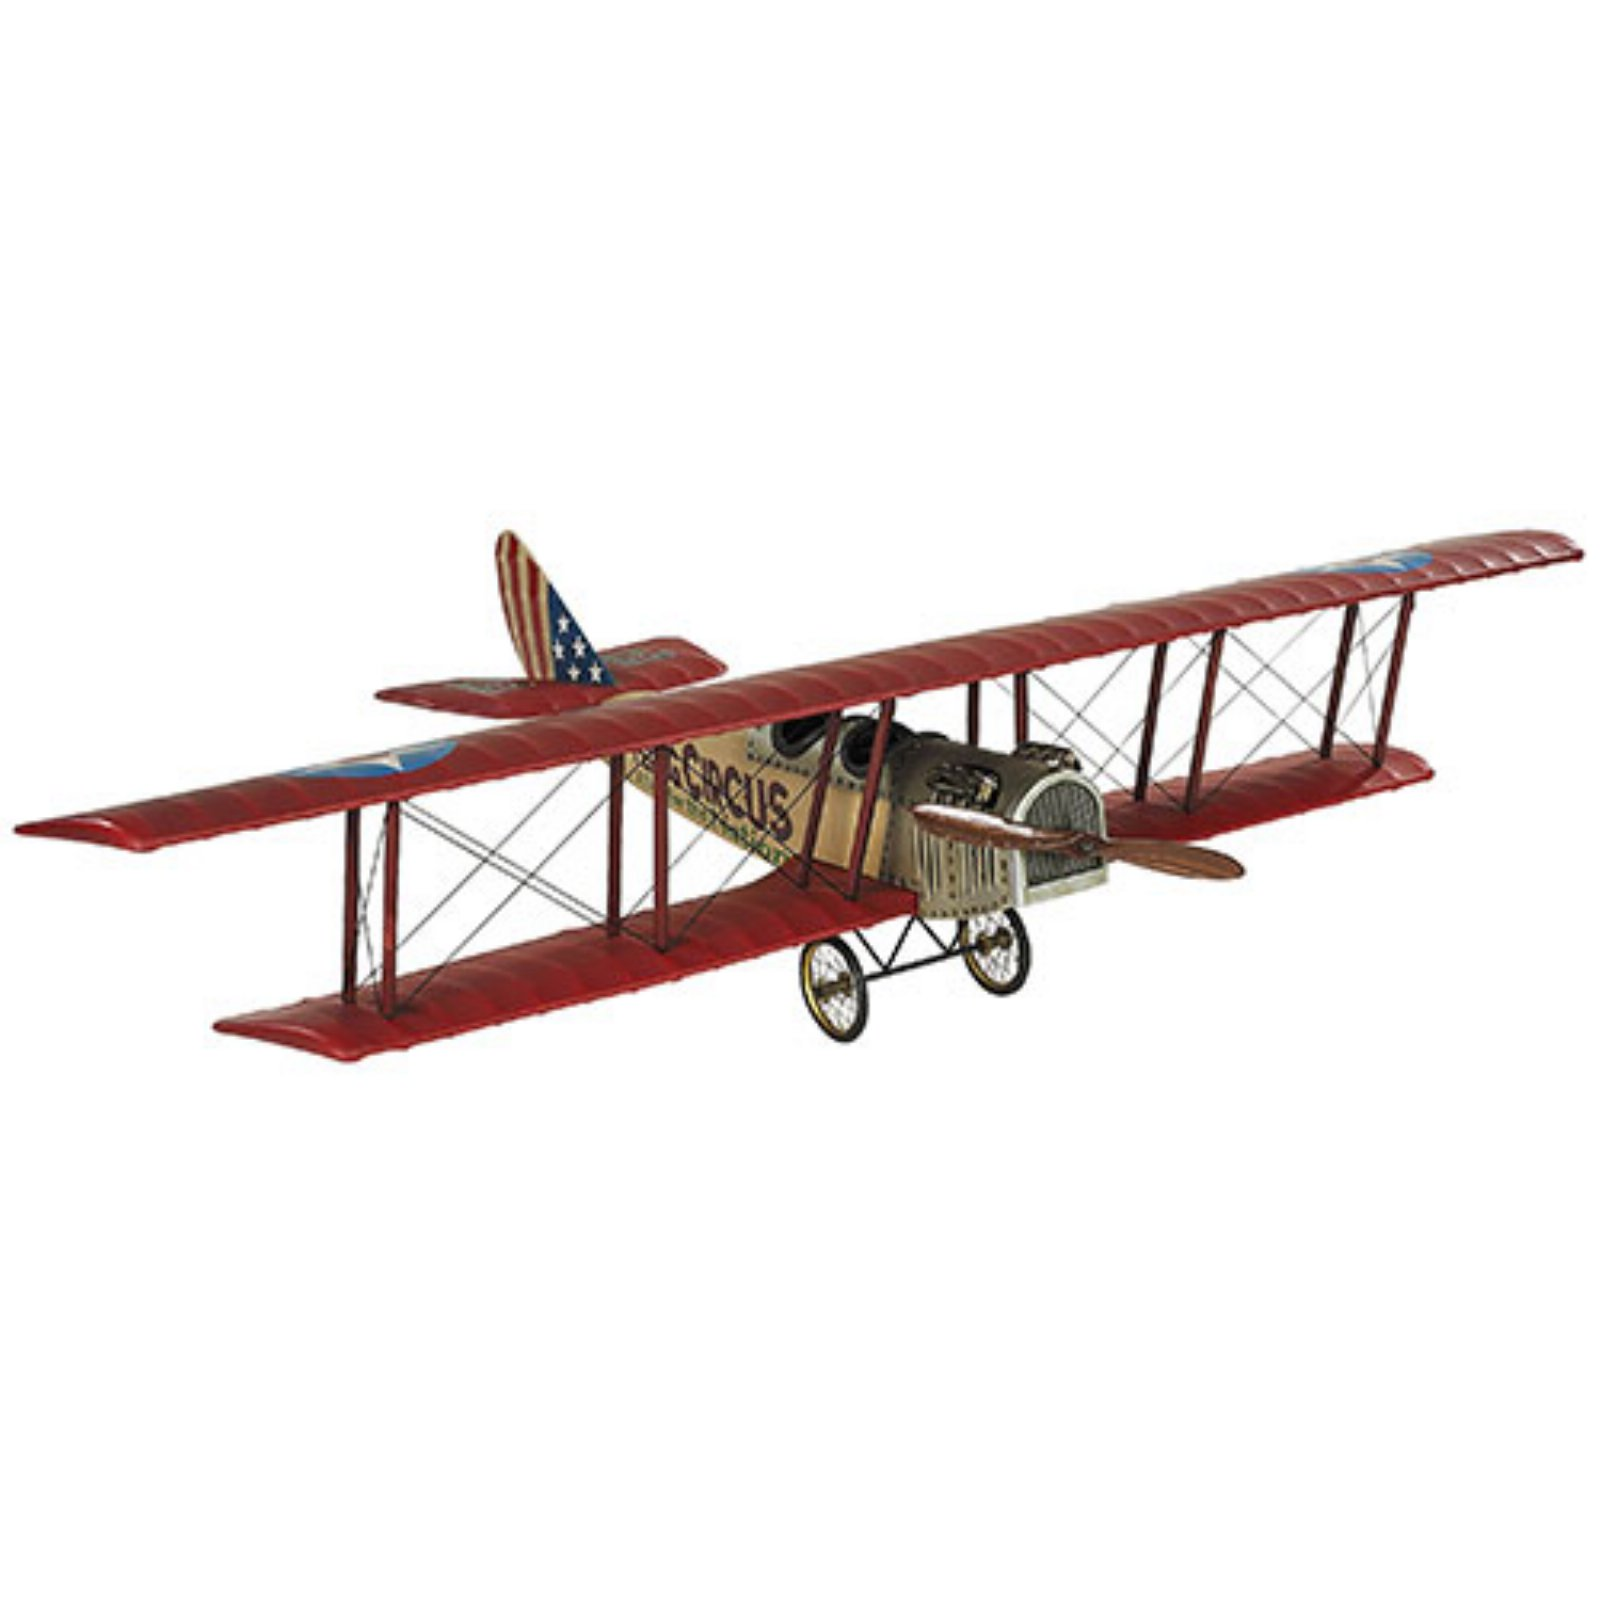 Authentic Models Flying Circus Jenny Model Airplane by Authentic Models